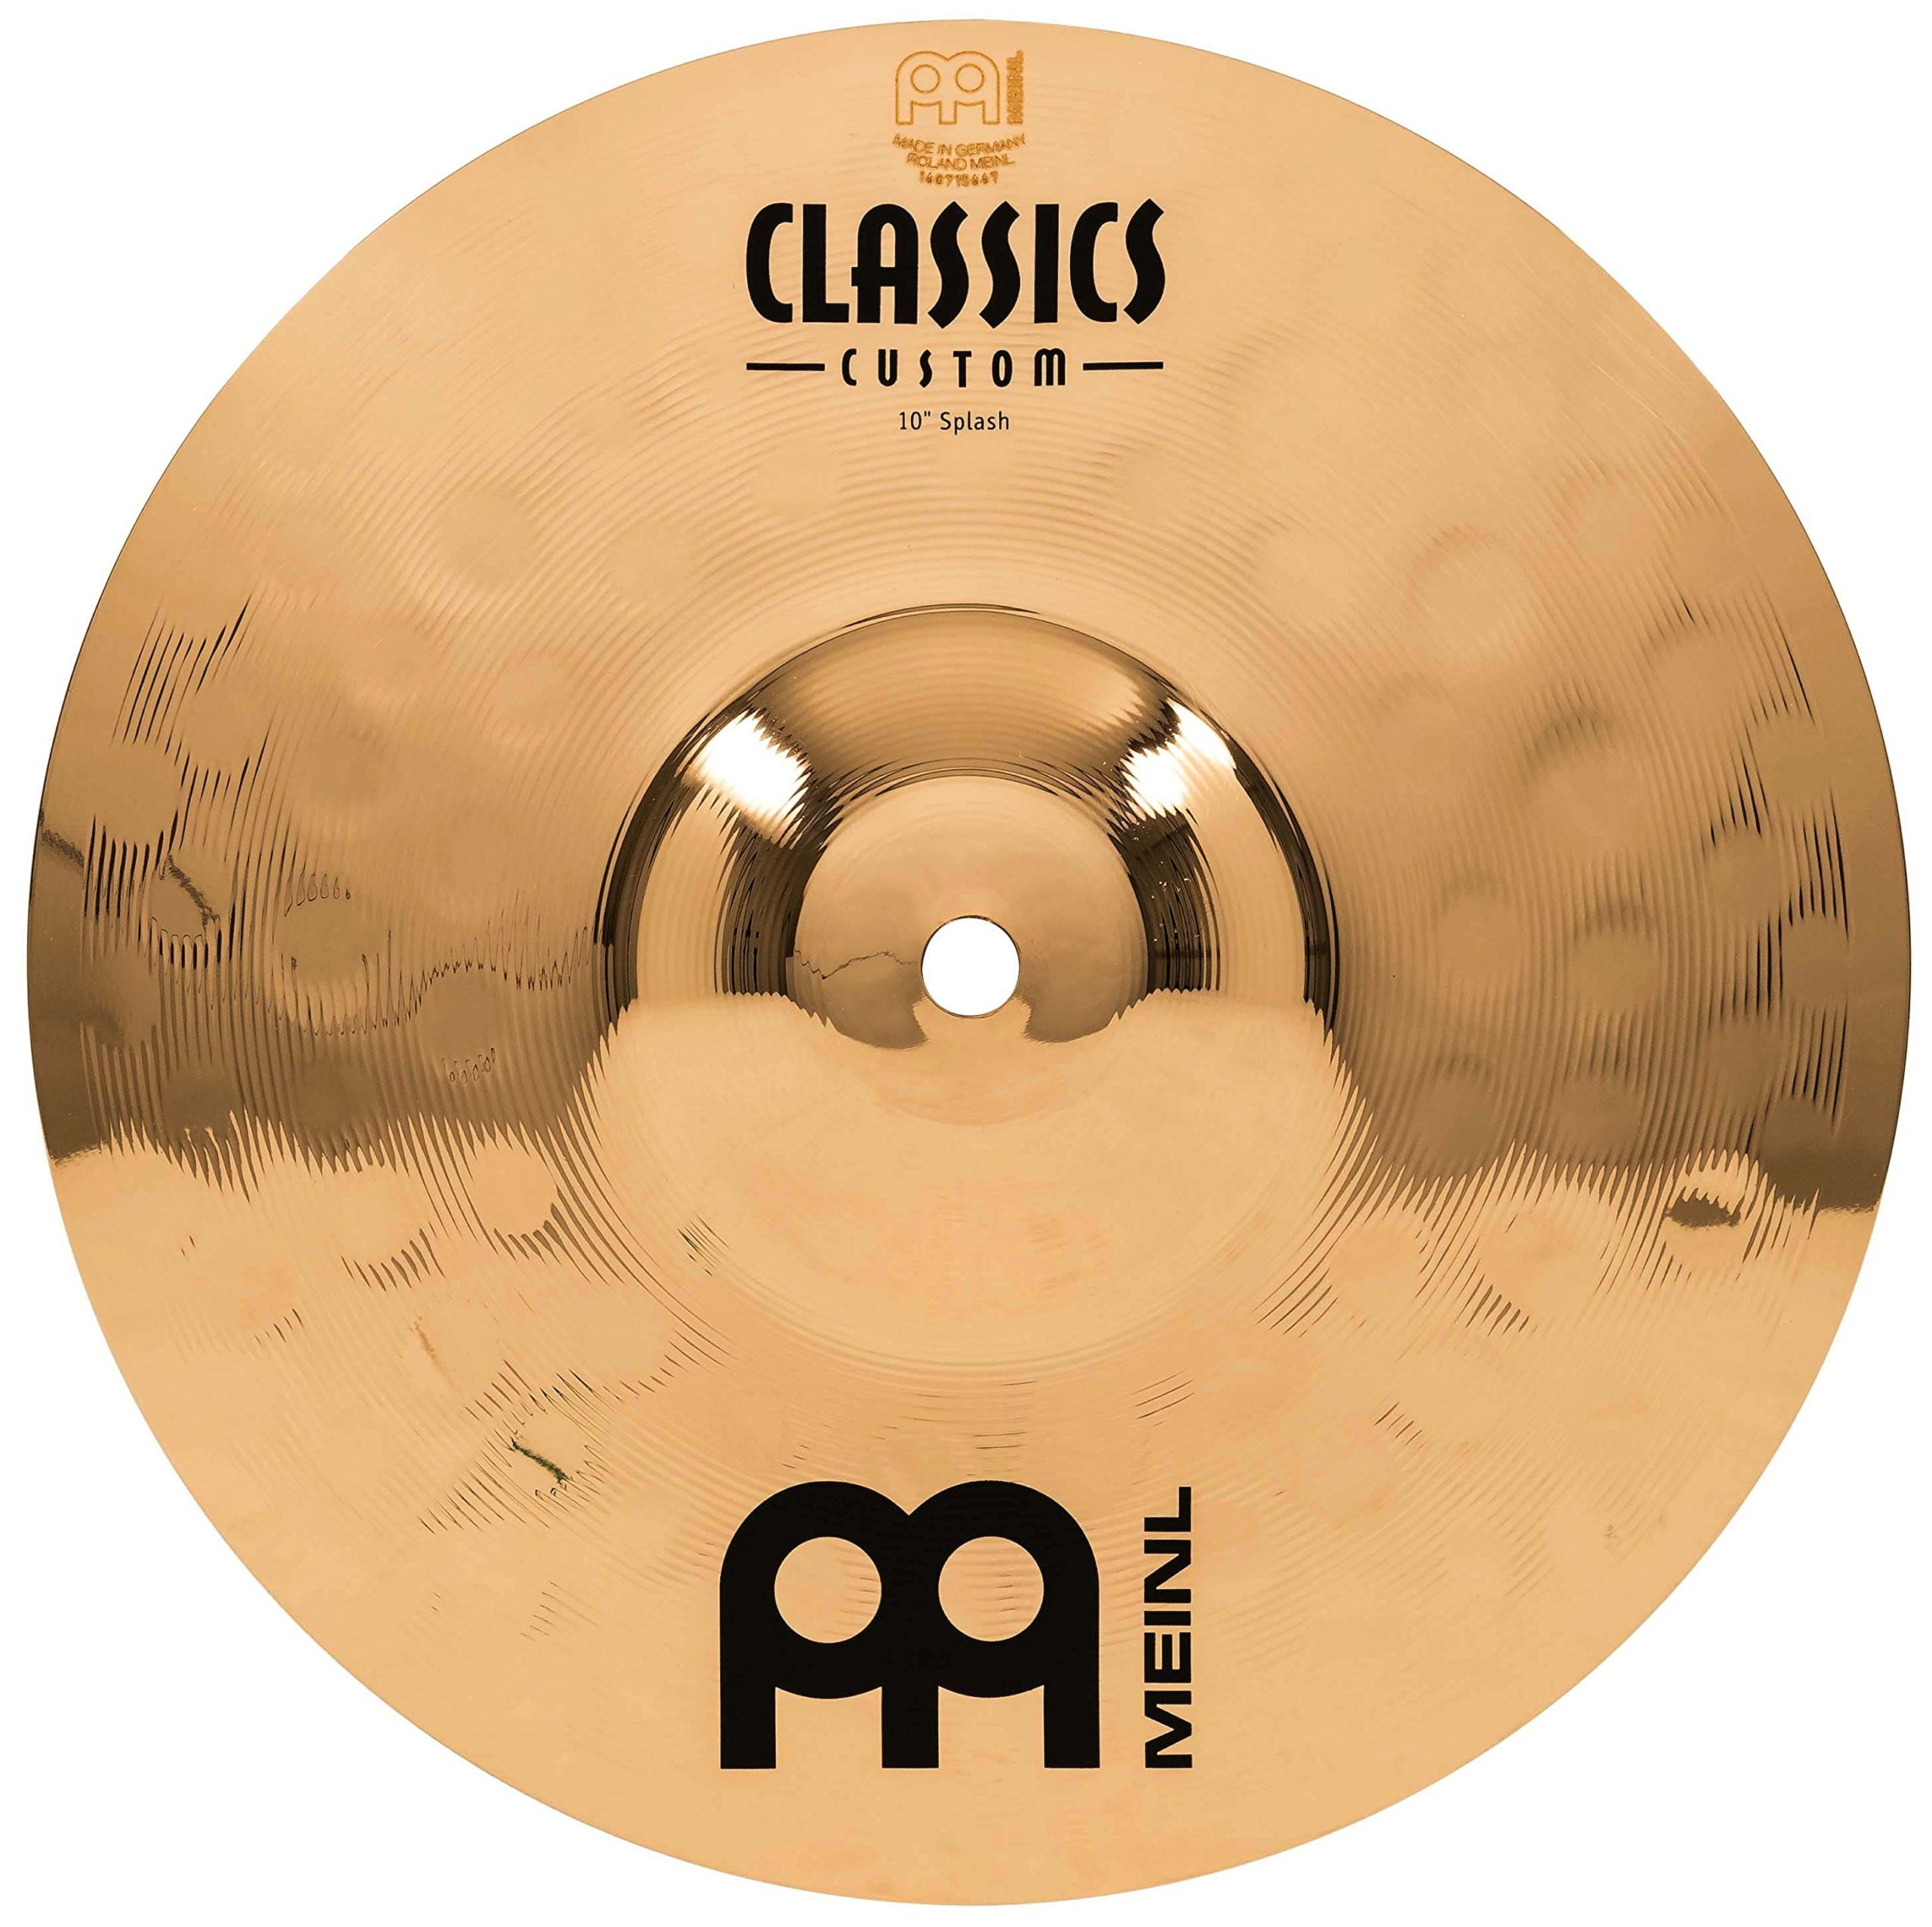 Meinl 10'' Splash Cymbal - Classics Custom Brilliant - Made In Germany, 2-YEAR WARRANTY (CC10S-B)